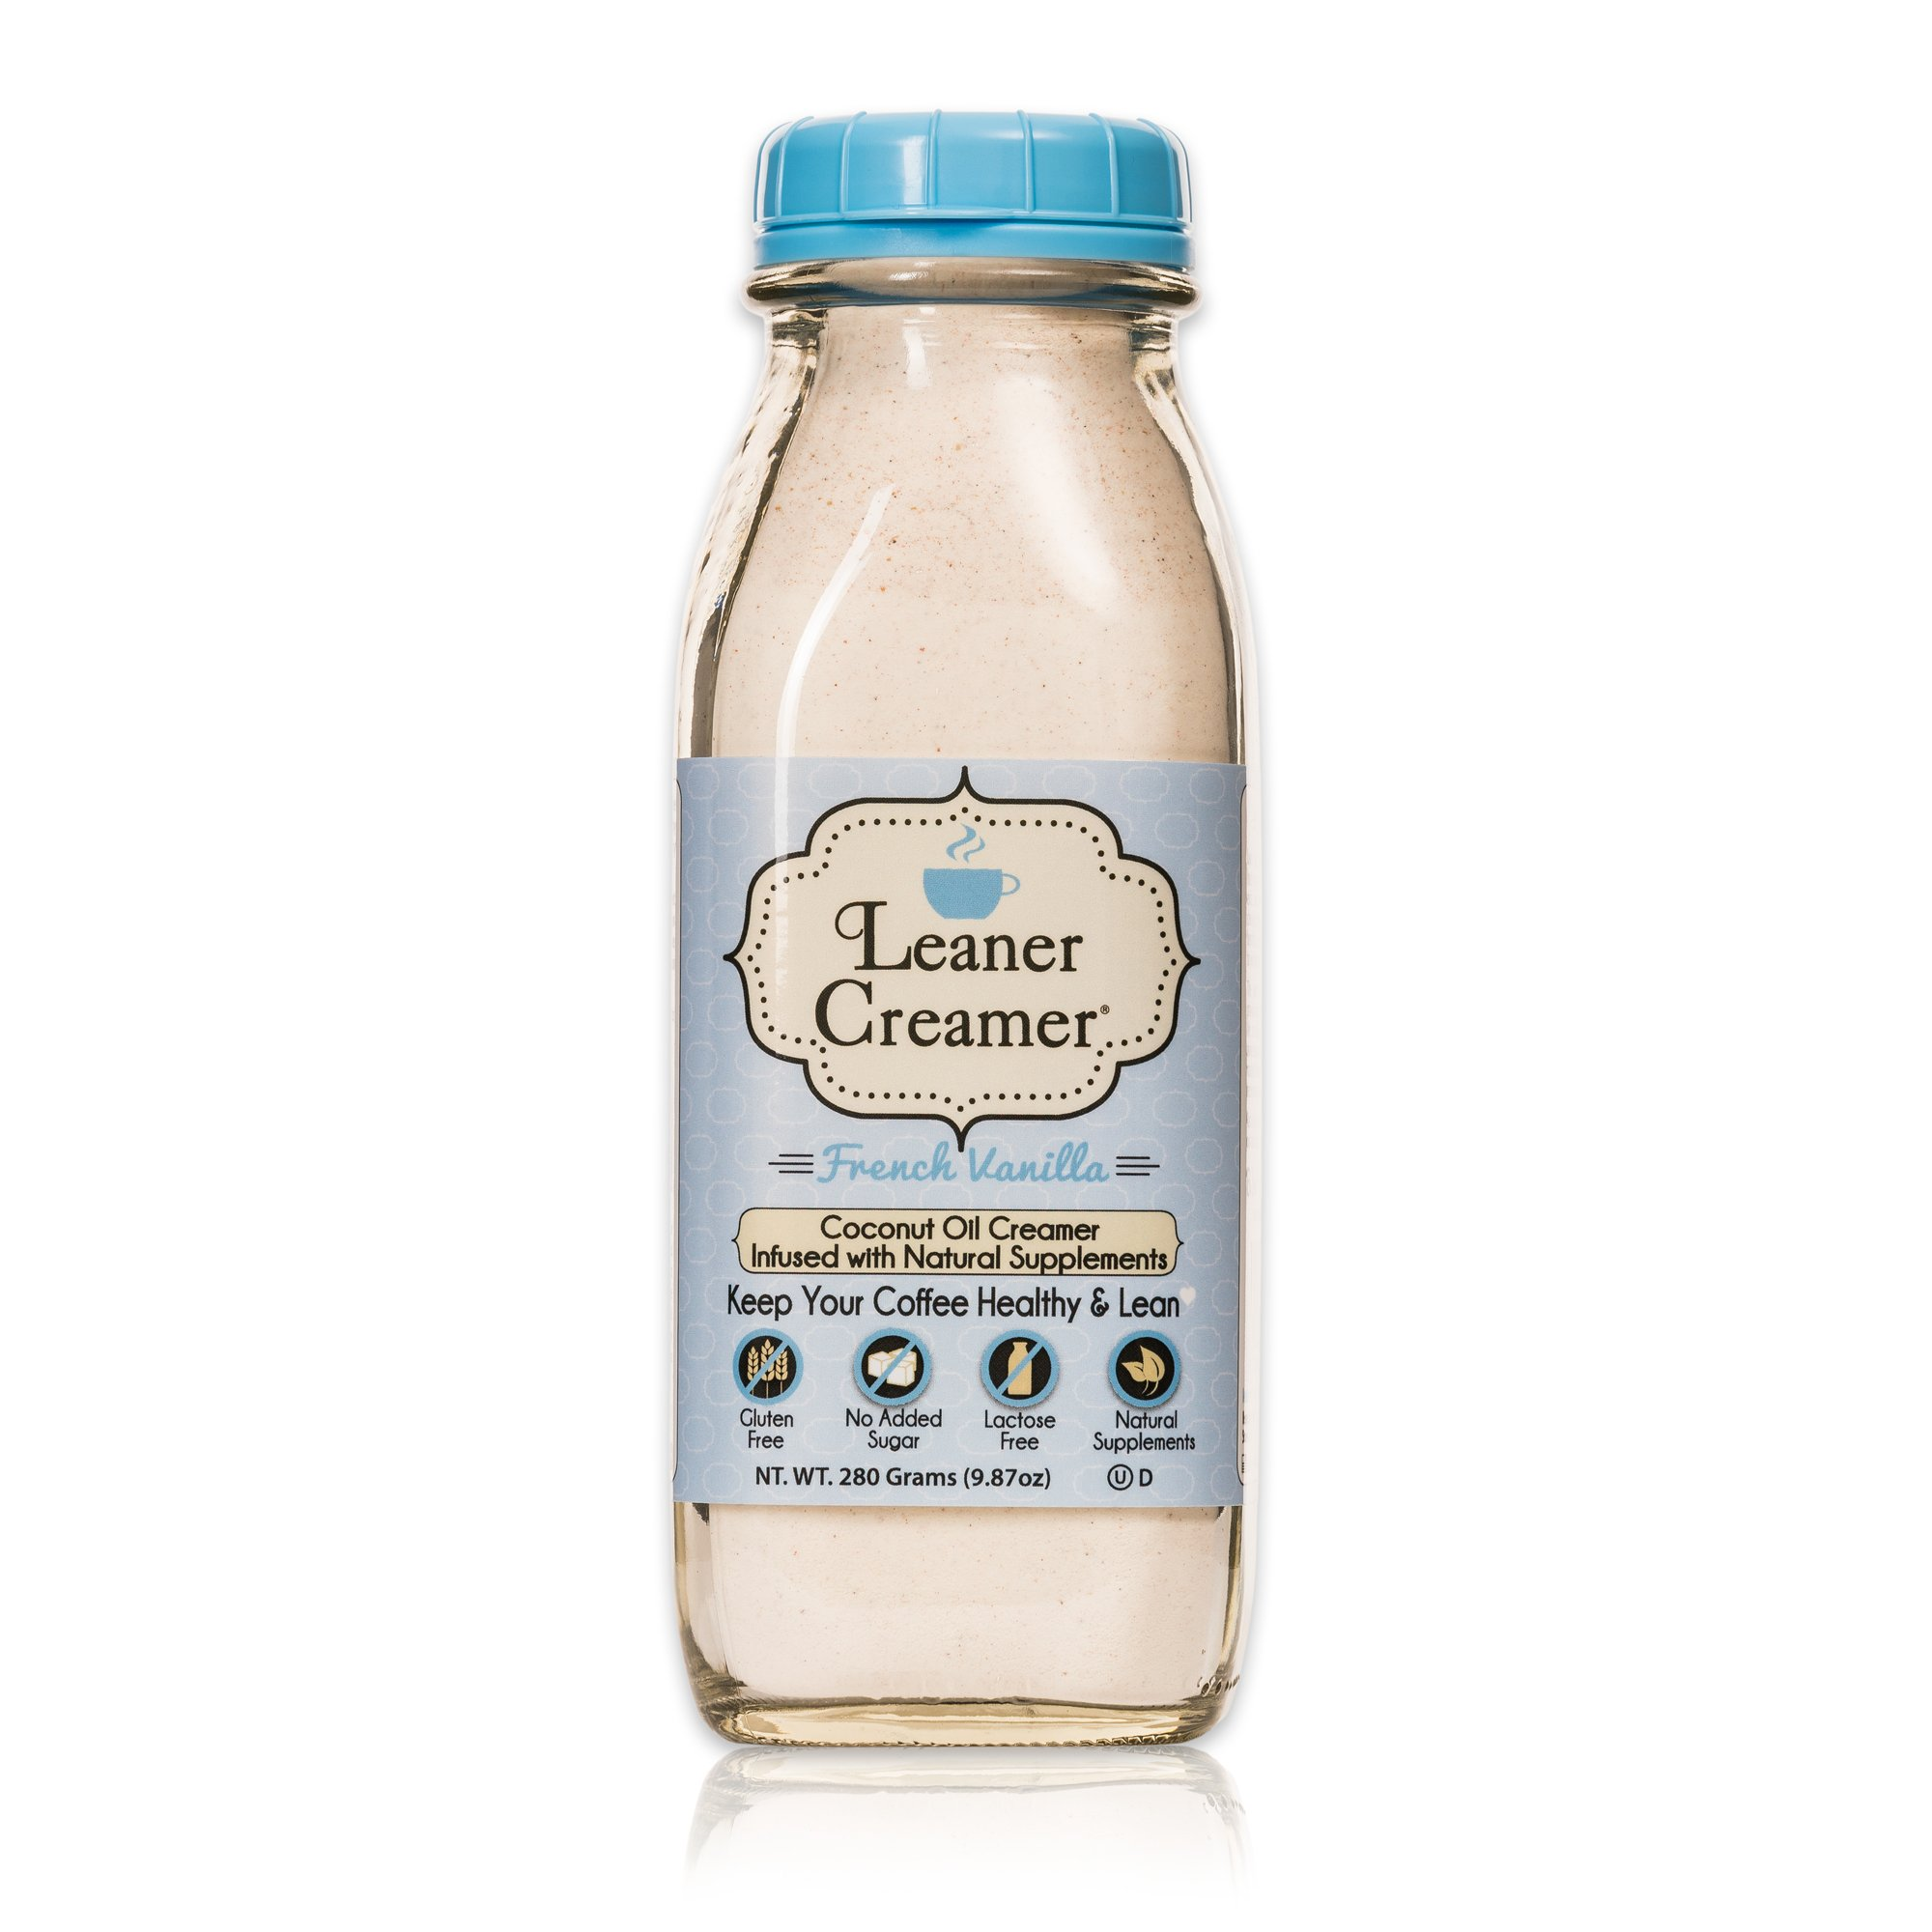 Leaner Creamer: The Lactose-Free All Natural Coffee Creamer Powder- A Healthy Complement for Coffee and Tea- May Promote Weight Loss and Suppress Appetite- French Vanilla - 280Gr by Leaner Creamer